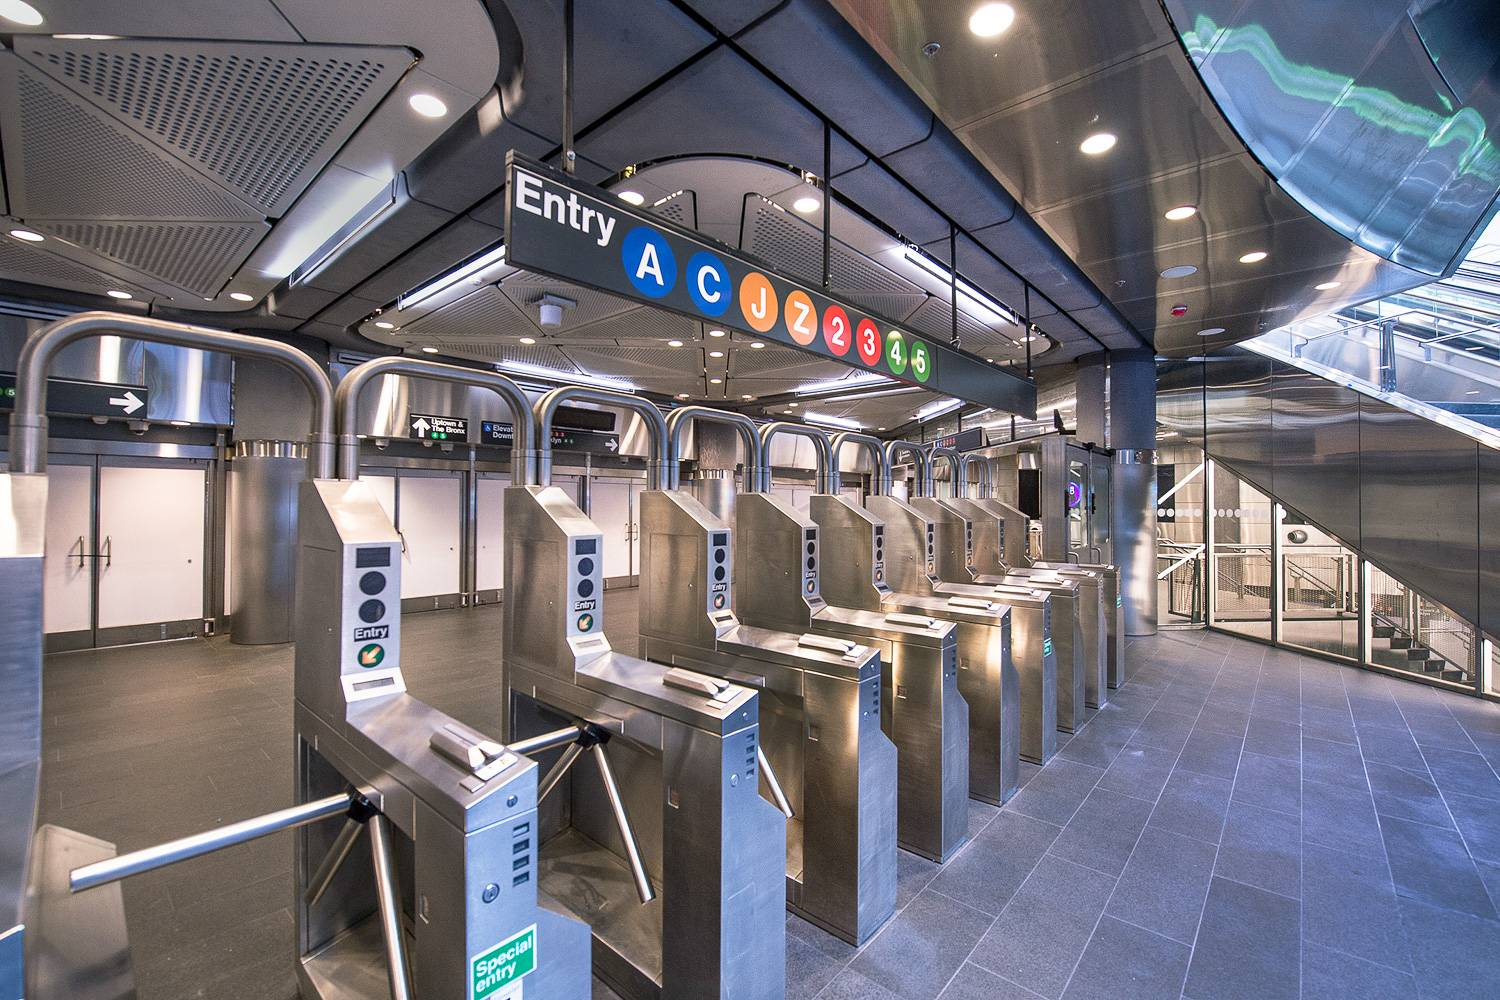 Image of the entrance turnstiles to the subway in Fulton Center.